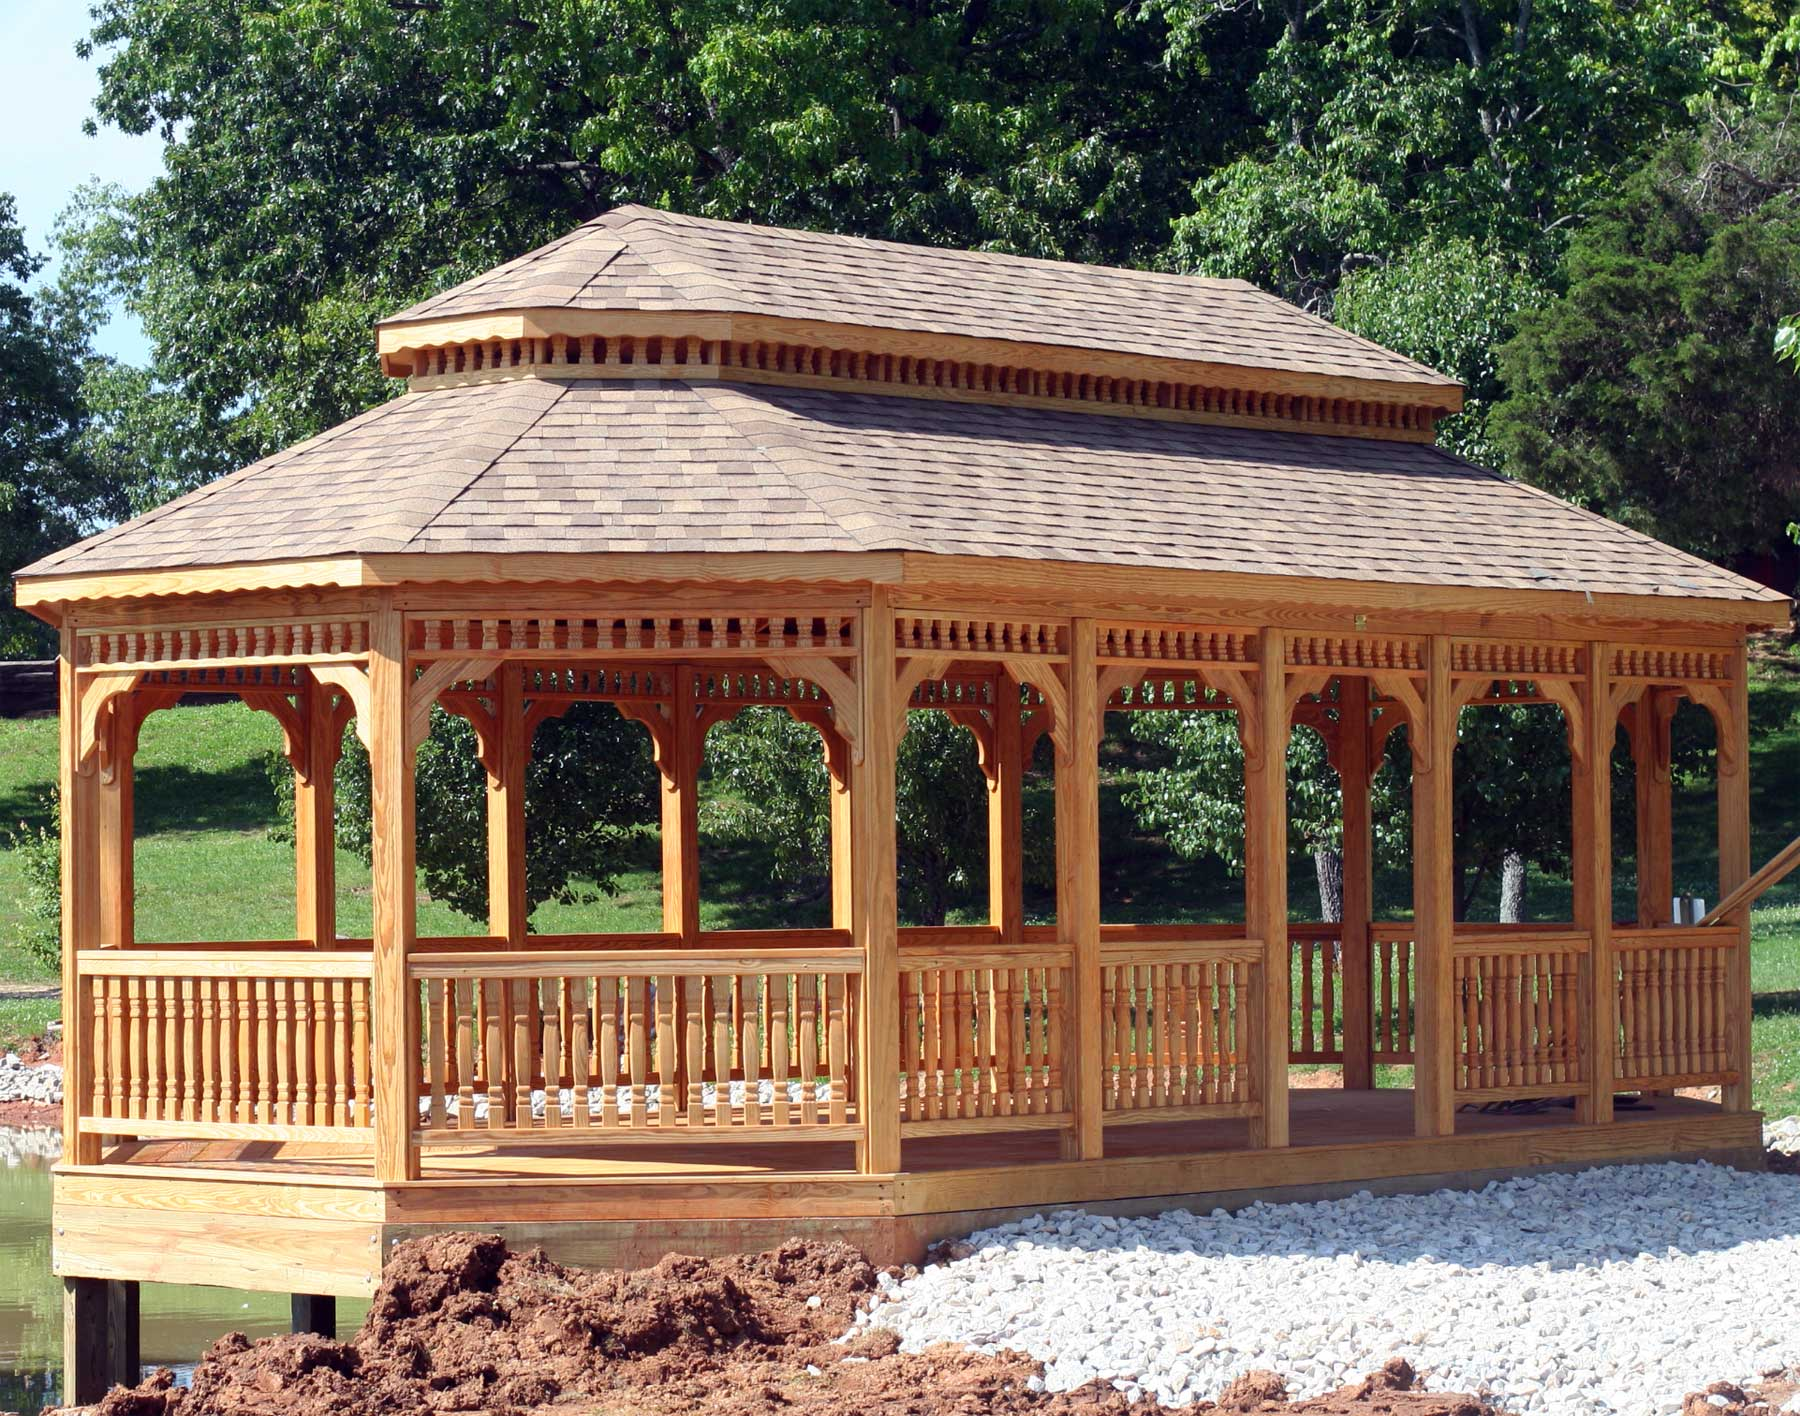 Treated pine double roof 8 sided oval gazebos gazebos by for Cupola designs